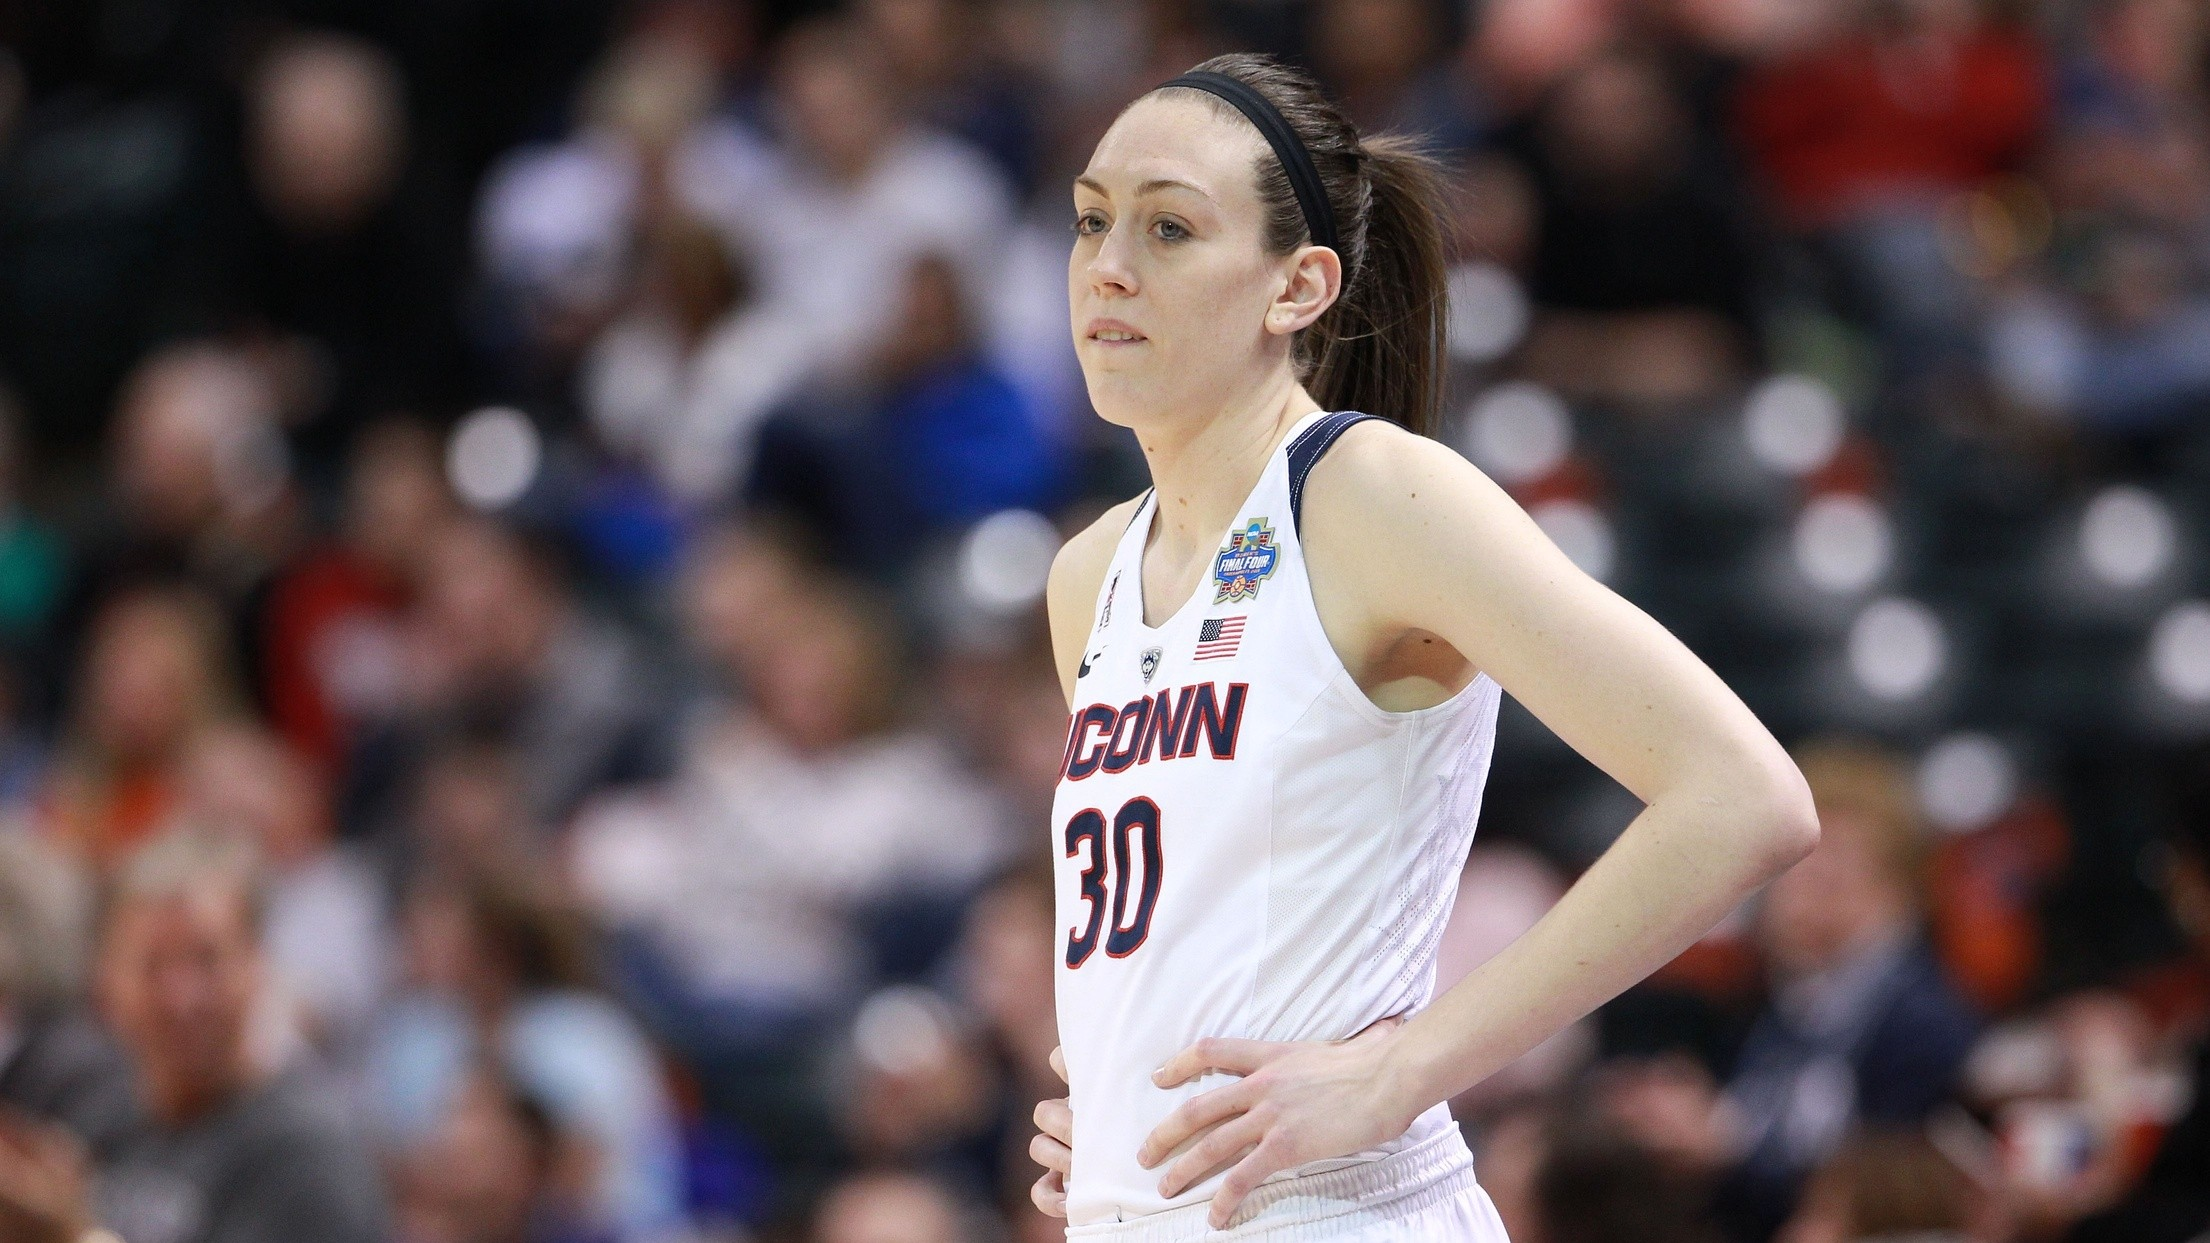 VICE Sports Q&A: Seattle Storm and Team USA Star Breanna Stewart